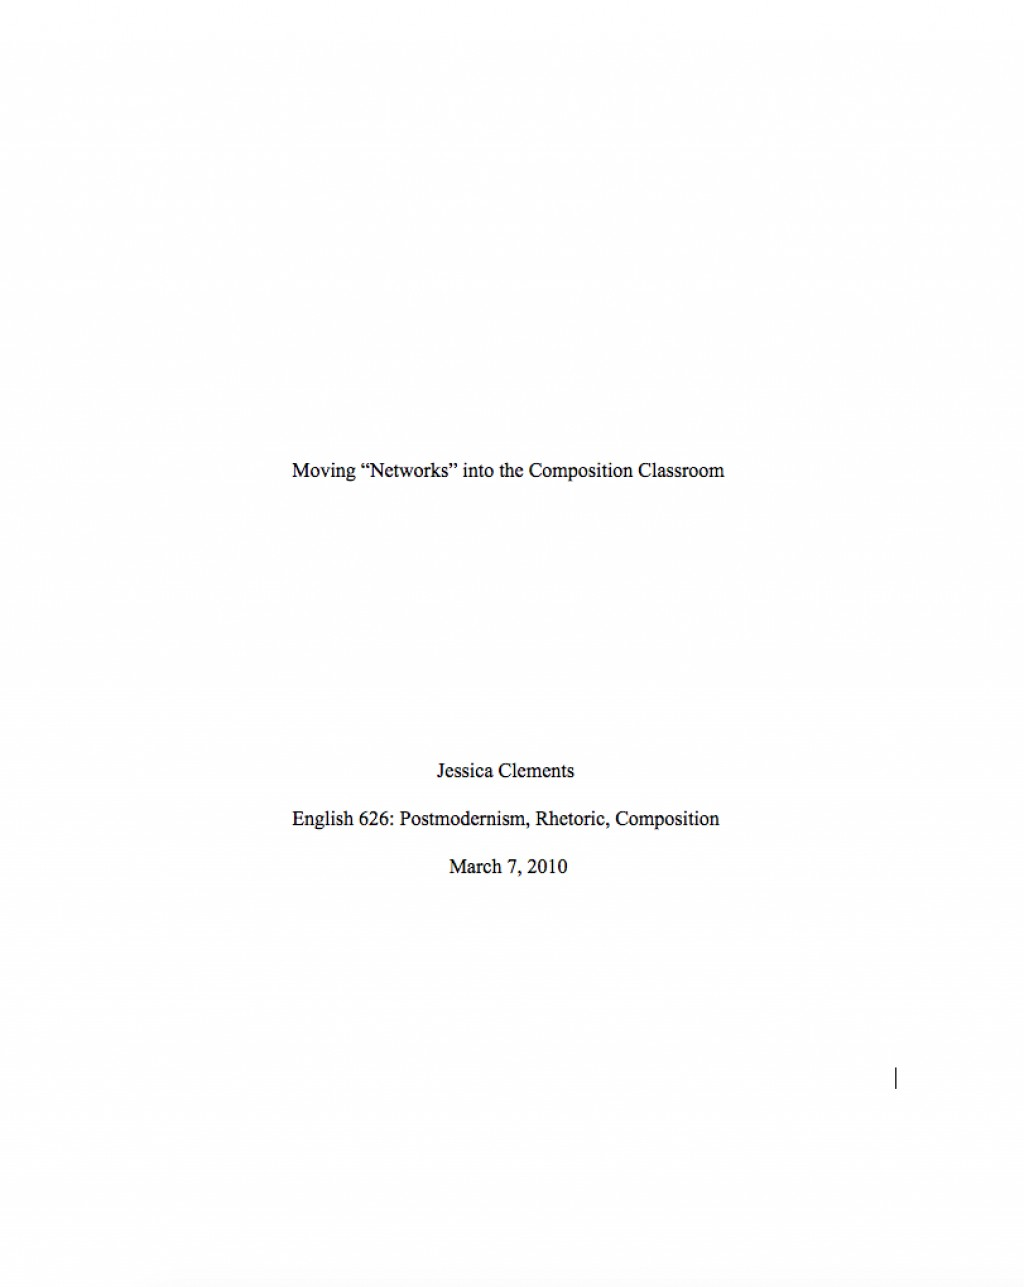 008 Front Page Research Paper Format 20180216121200 717 02 Striking Title Chicago For High School Mla Style Large